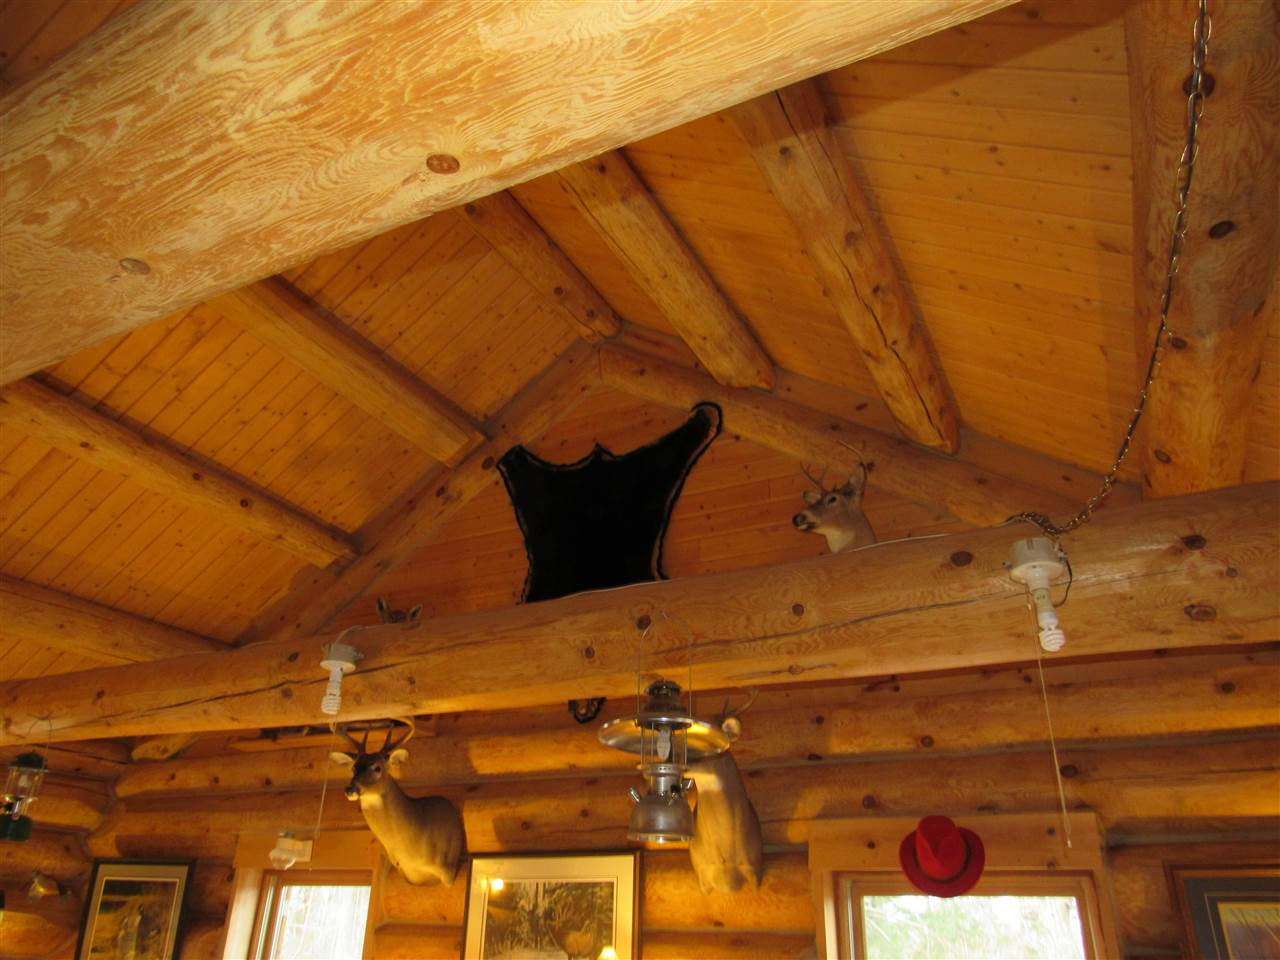 skanee single personals For sale: $229,000 - single family, 2 bed, 1 bath, 960 sqft at 24642 little huron in baraga log cabin on 120-acre wooded highland property in michigan's upper peninsula for sale.